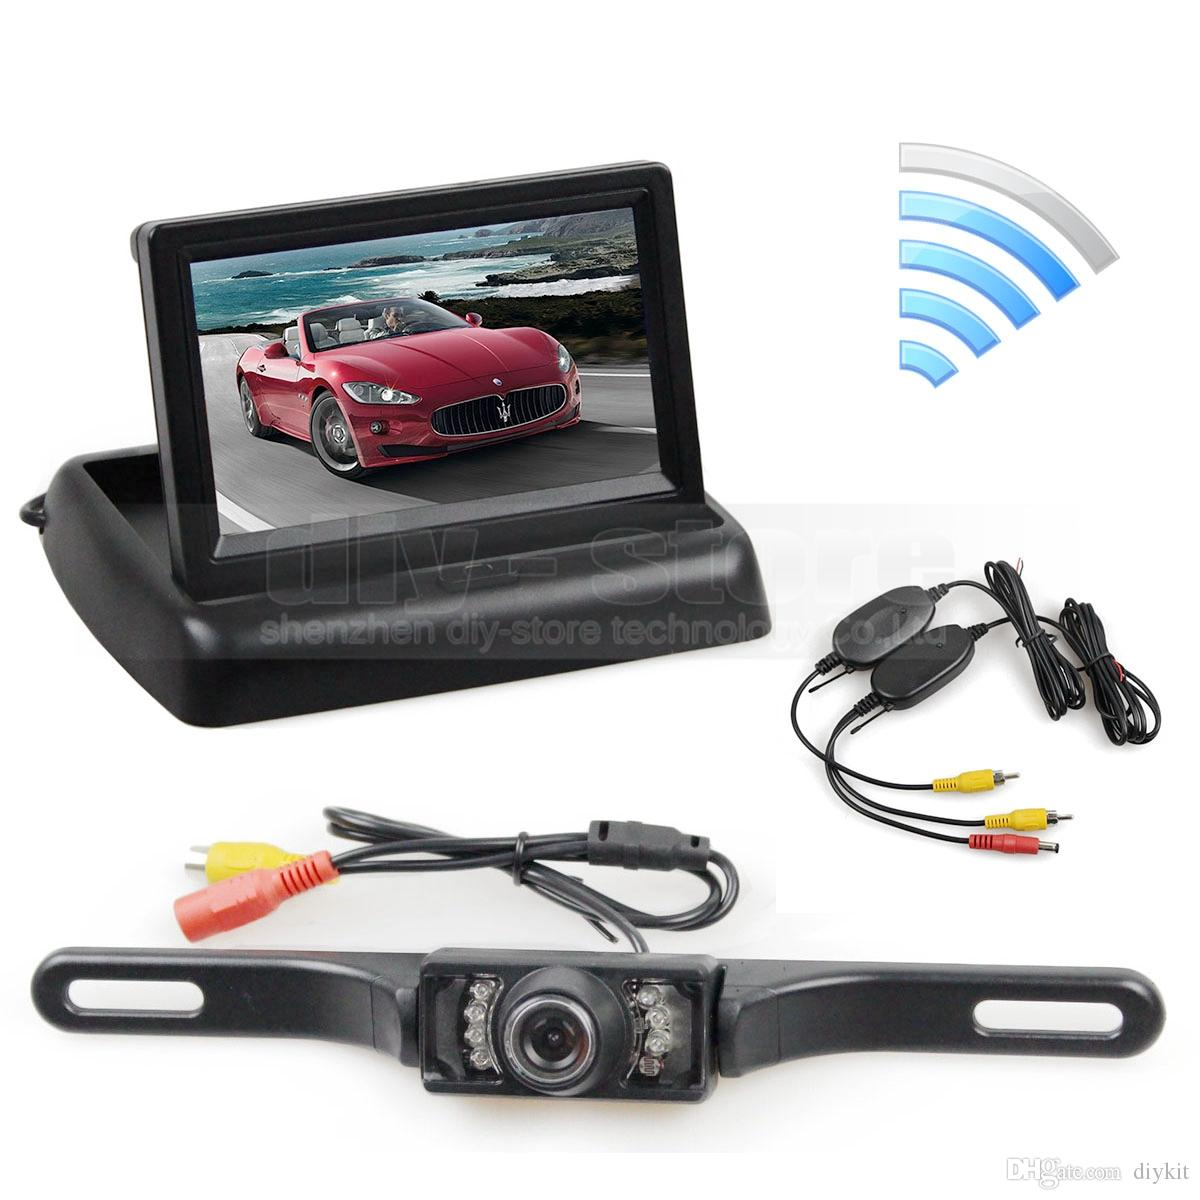 Wireless 4.3inch Car Reversing Camera Kit Back Up Car Monitor LCD Display  HD Car Rear View Camera Parking System UK 2019 From Diykit 0038b70d2